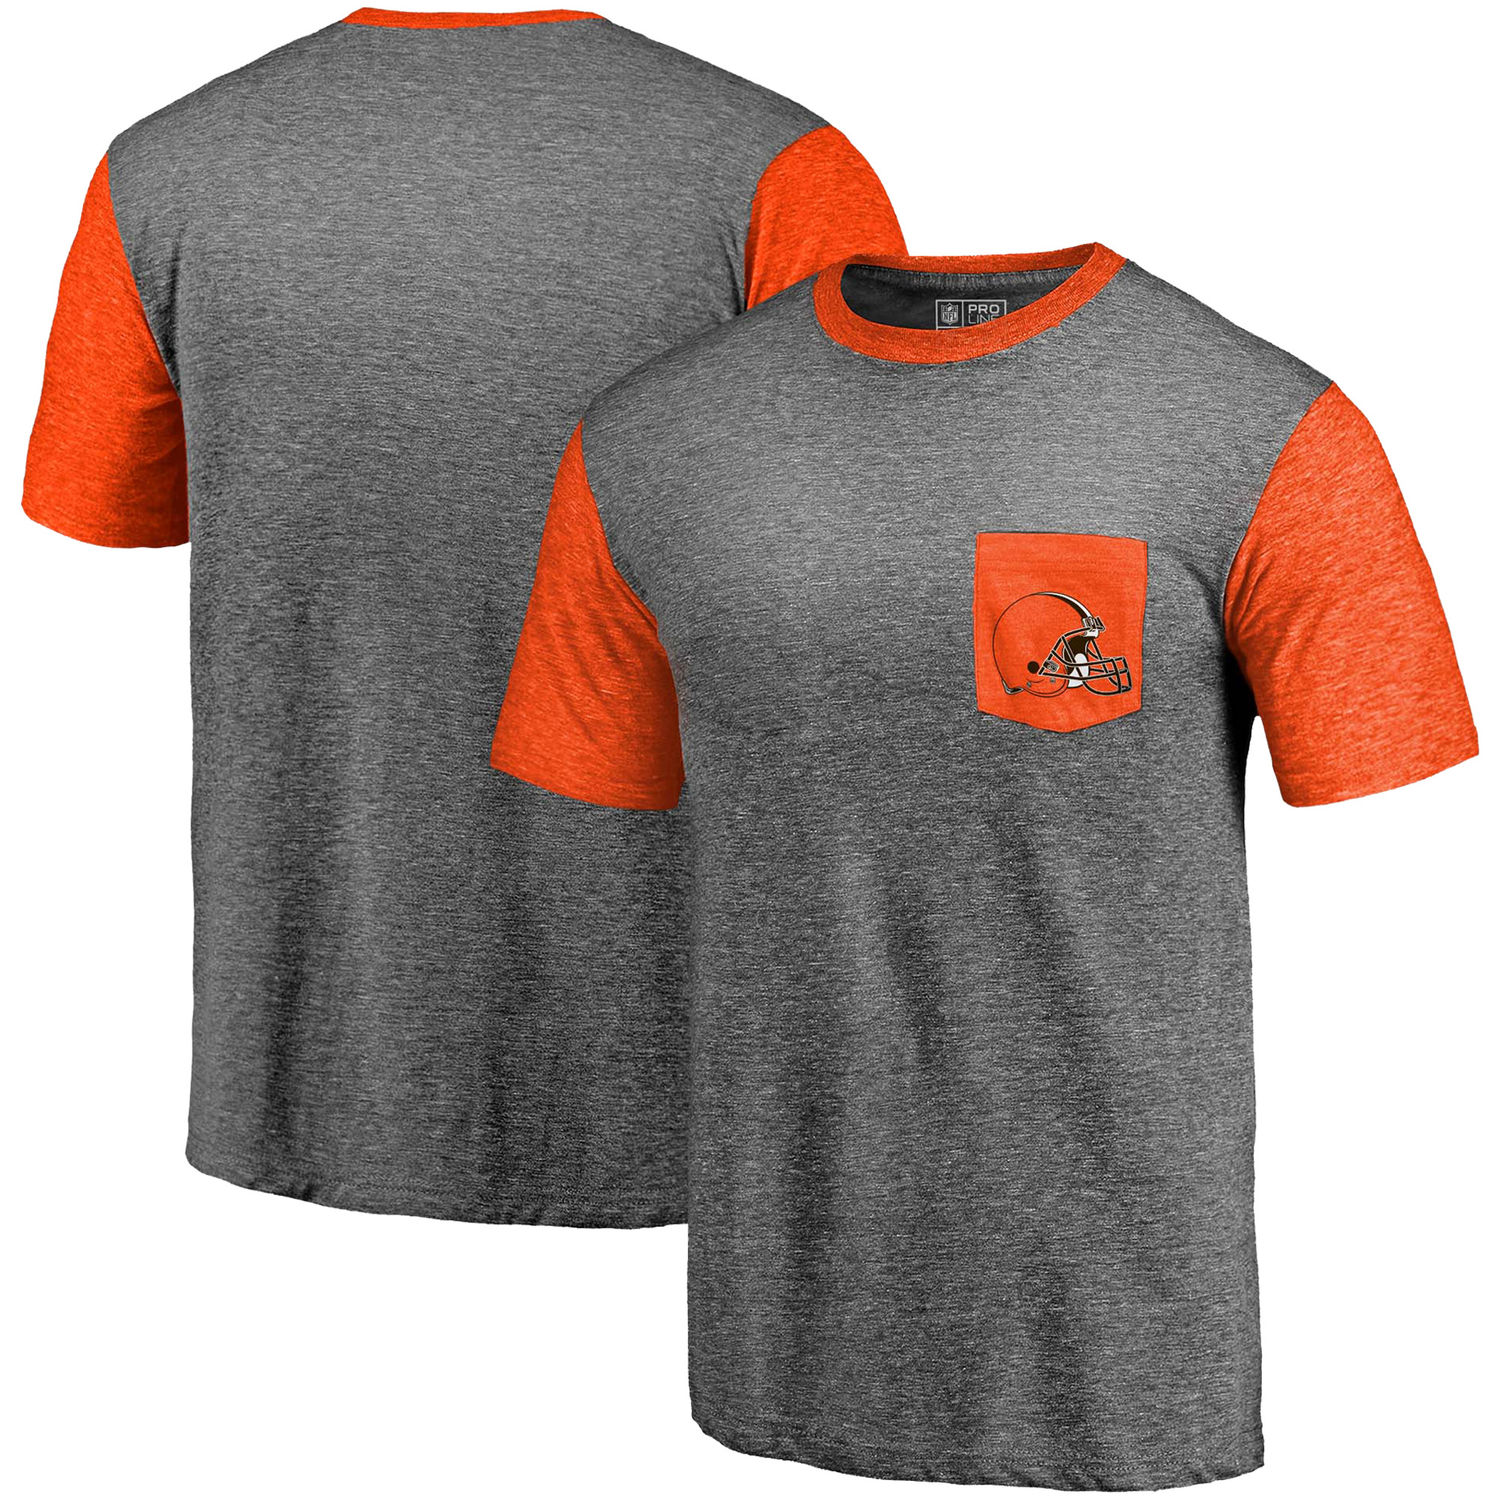 Men's Cleveland Browns Pro Line by Fanatics Branded Heathered Gray-Orange Refresh Pocket T-Shirt